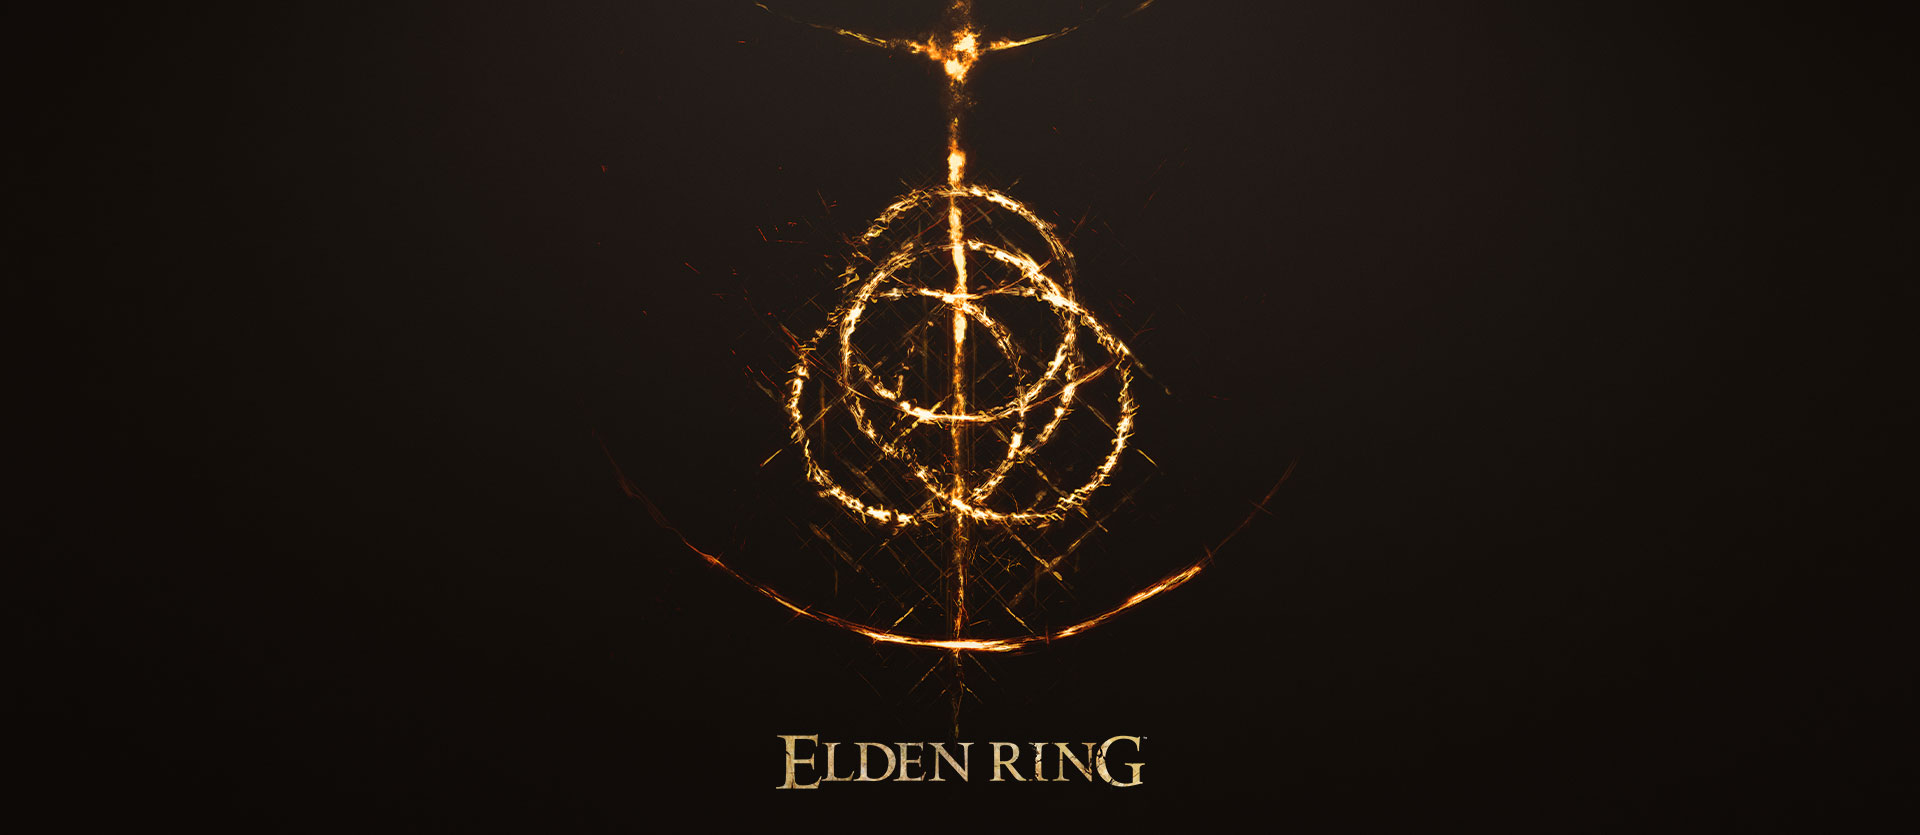 Elden Ring-logotypen